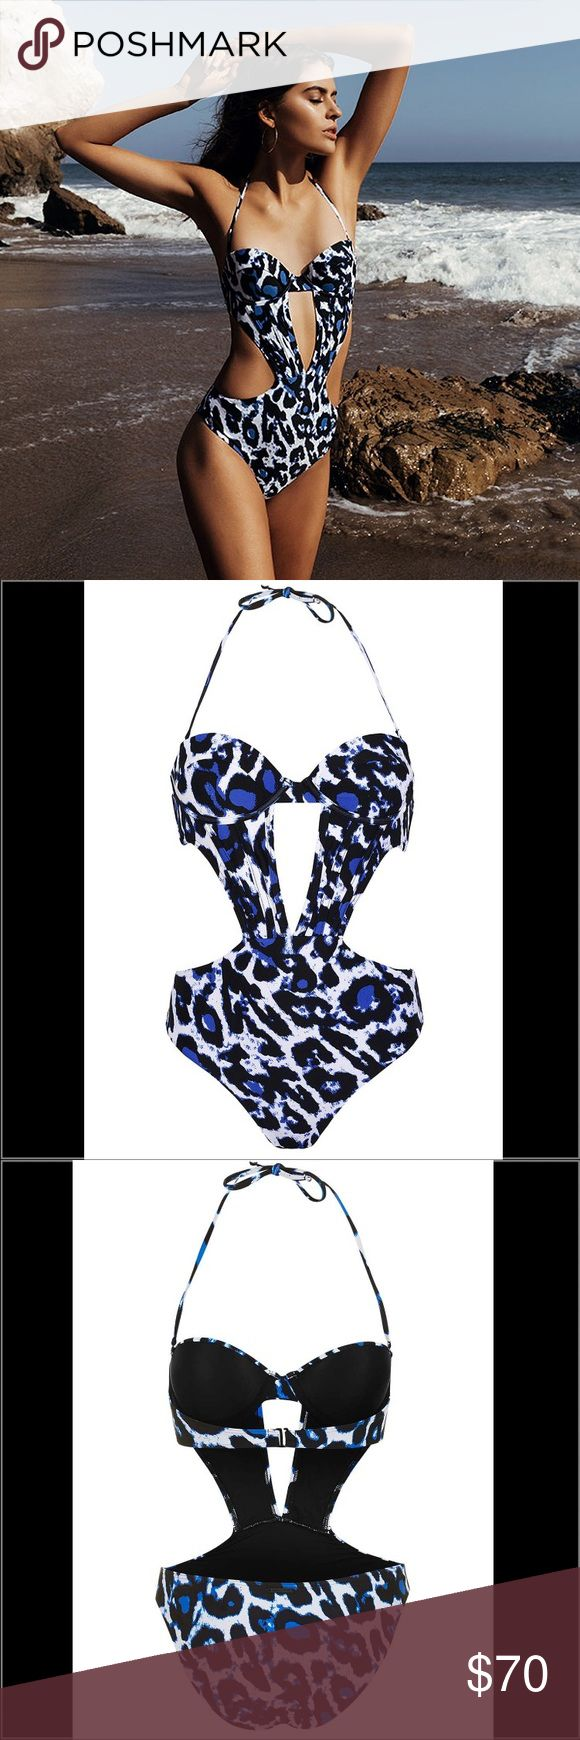 Kendall + Kylie Animal Print Cut-Out Swimsuit Do the cut-out trend with Kendall + Kylie's update to the all-in-one swimsuit. Mixing animal prints with cut-out details, a simple shape comes detailed with a split to the front. Underwired cups provide shape and support to the bust, complimented by a removable halterneck strap. By Kendall + Kylie at Topshop. 83% Nylon, 17% Elastane. Cool hand wash. Rinse in fresh water immediately after use.   Kendall + Kylie swimwear is true to the classic…